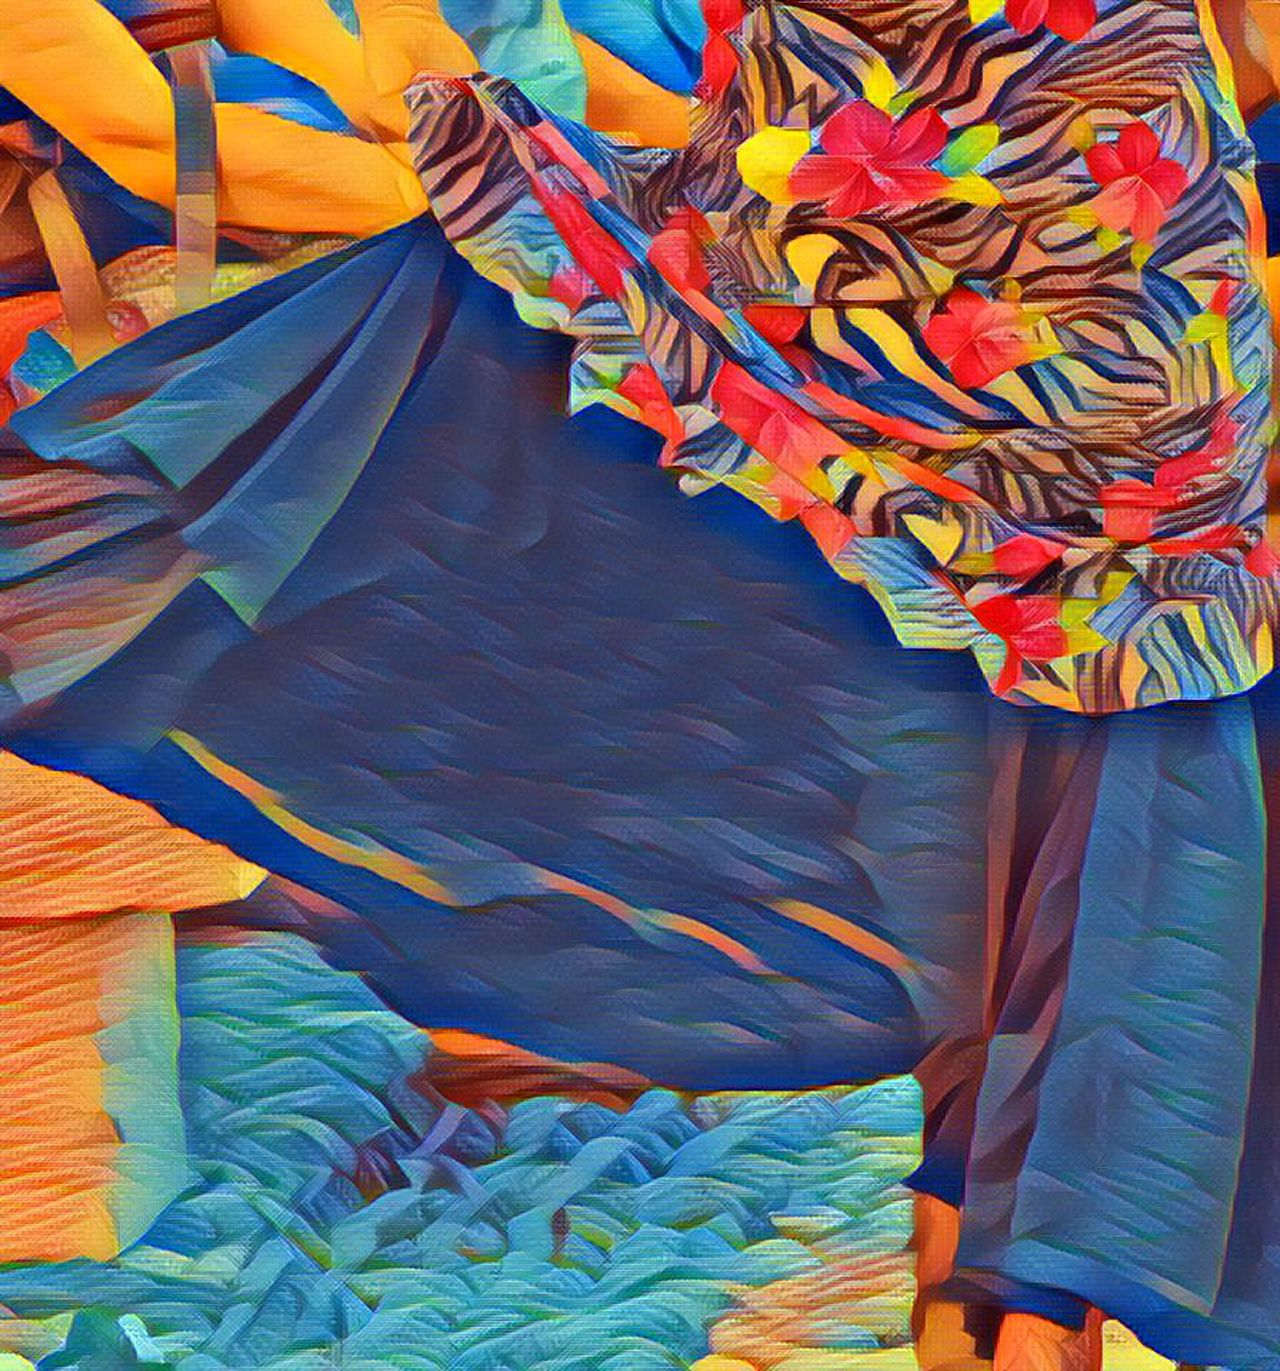 Flamenco Dancer Flamenco Dress IN THE STREETS of Granada SPAIN Andalucía Special Effects Arty Multi Colored Textiles Shapes Exploring City Streets  Colorful Photo Edit Dress Lifestyle Way Of Life Culture Tradition